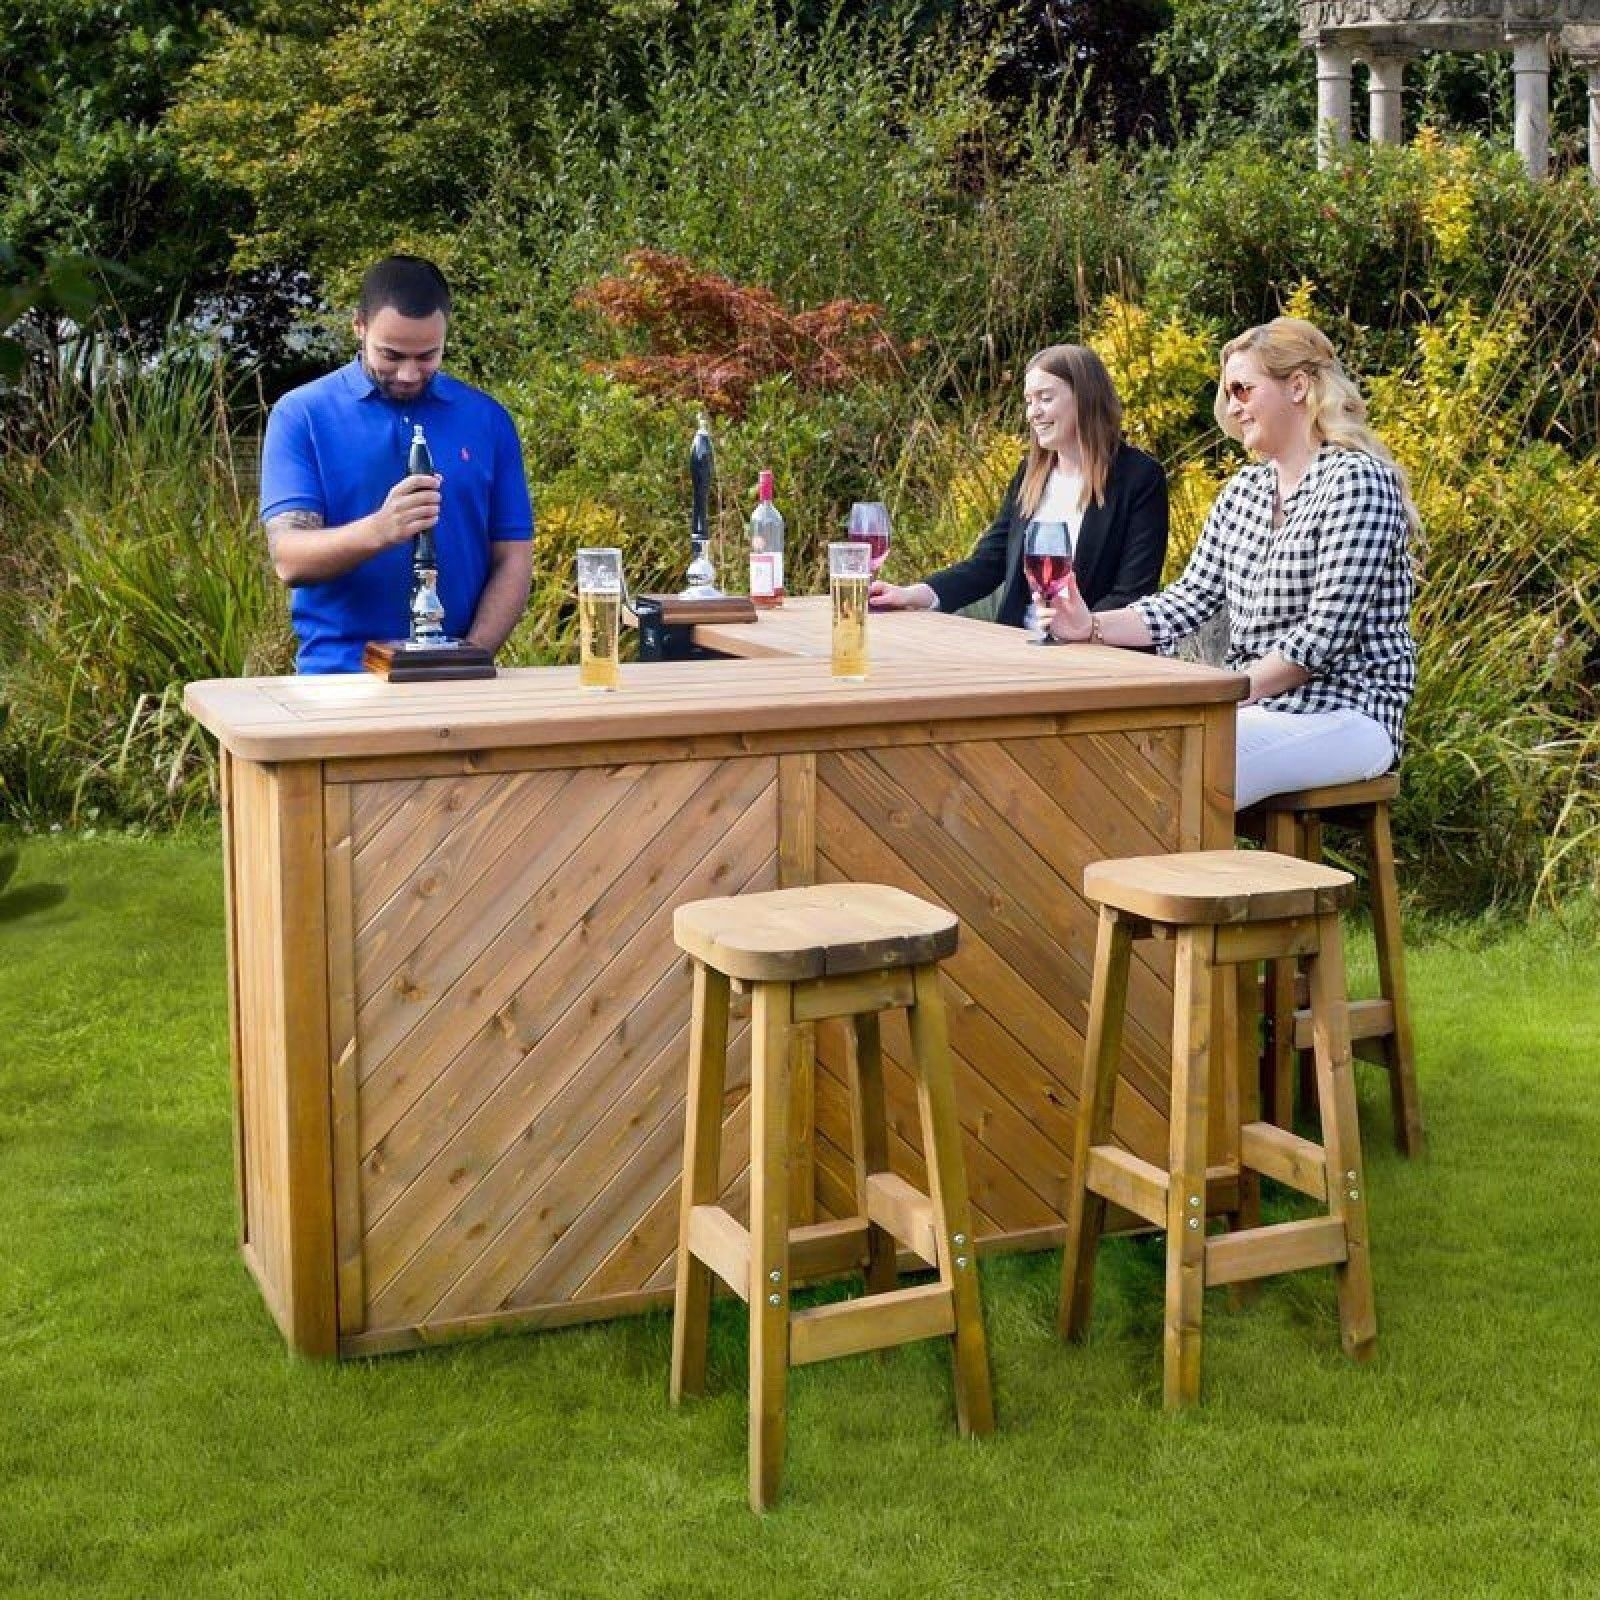 Garden bar garden bar set table stools outdoor seating patio dining dine outside home VXDHMNH